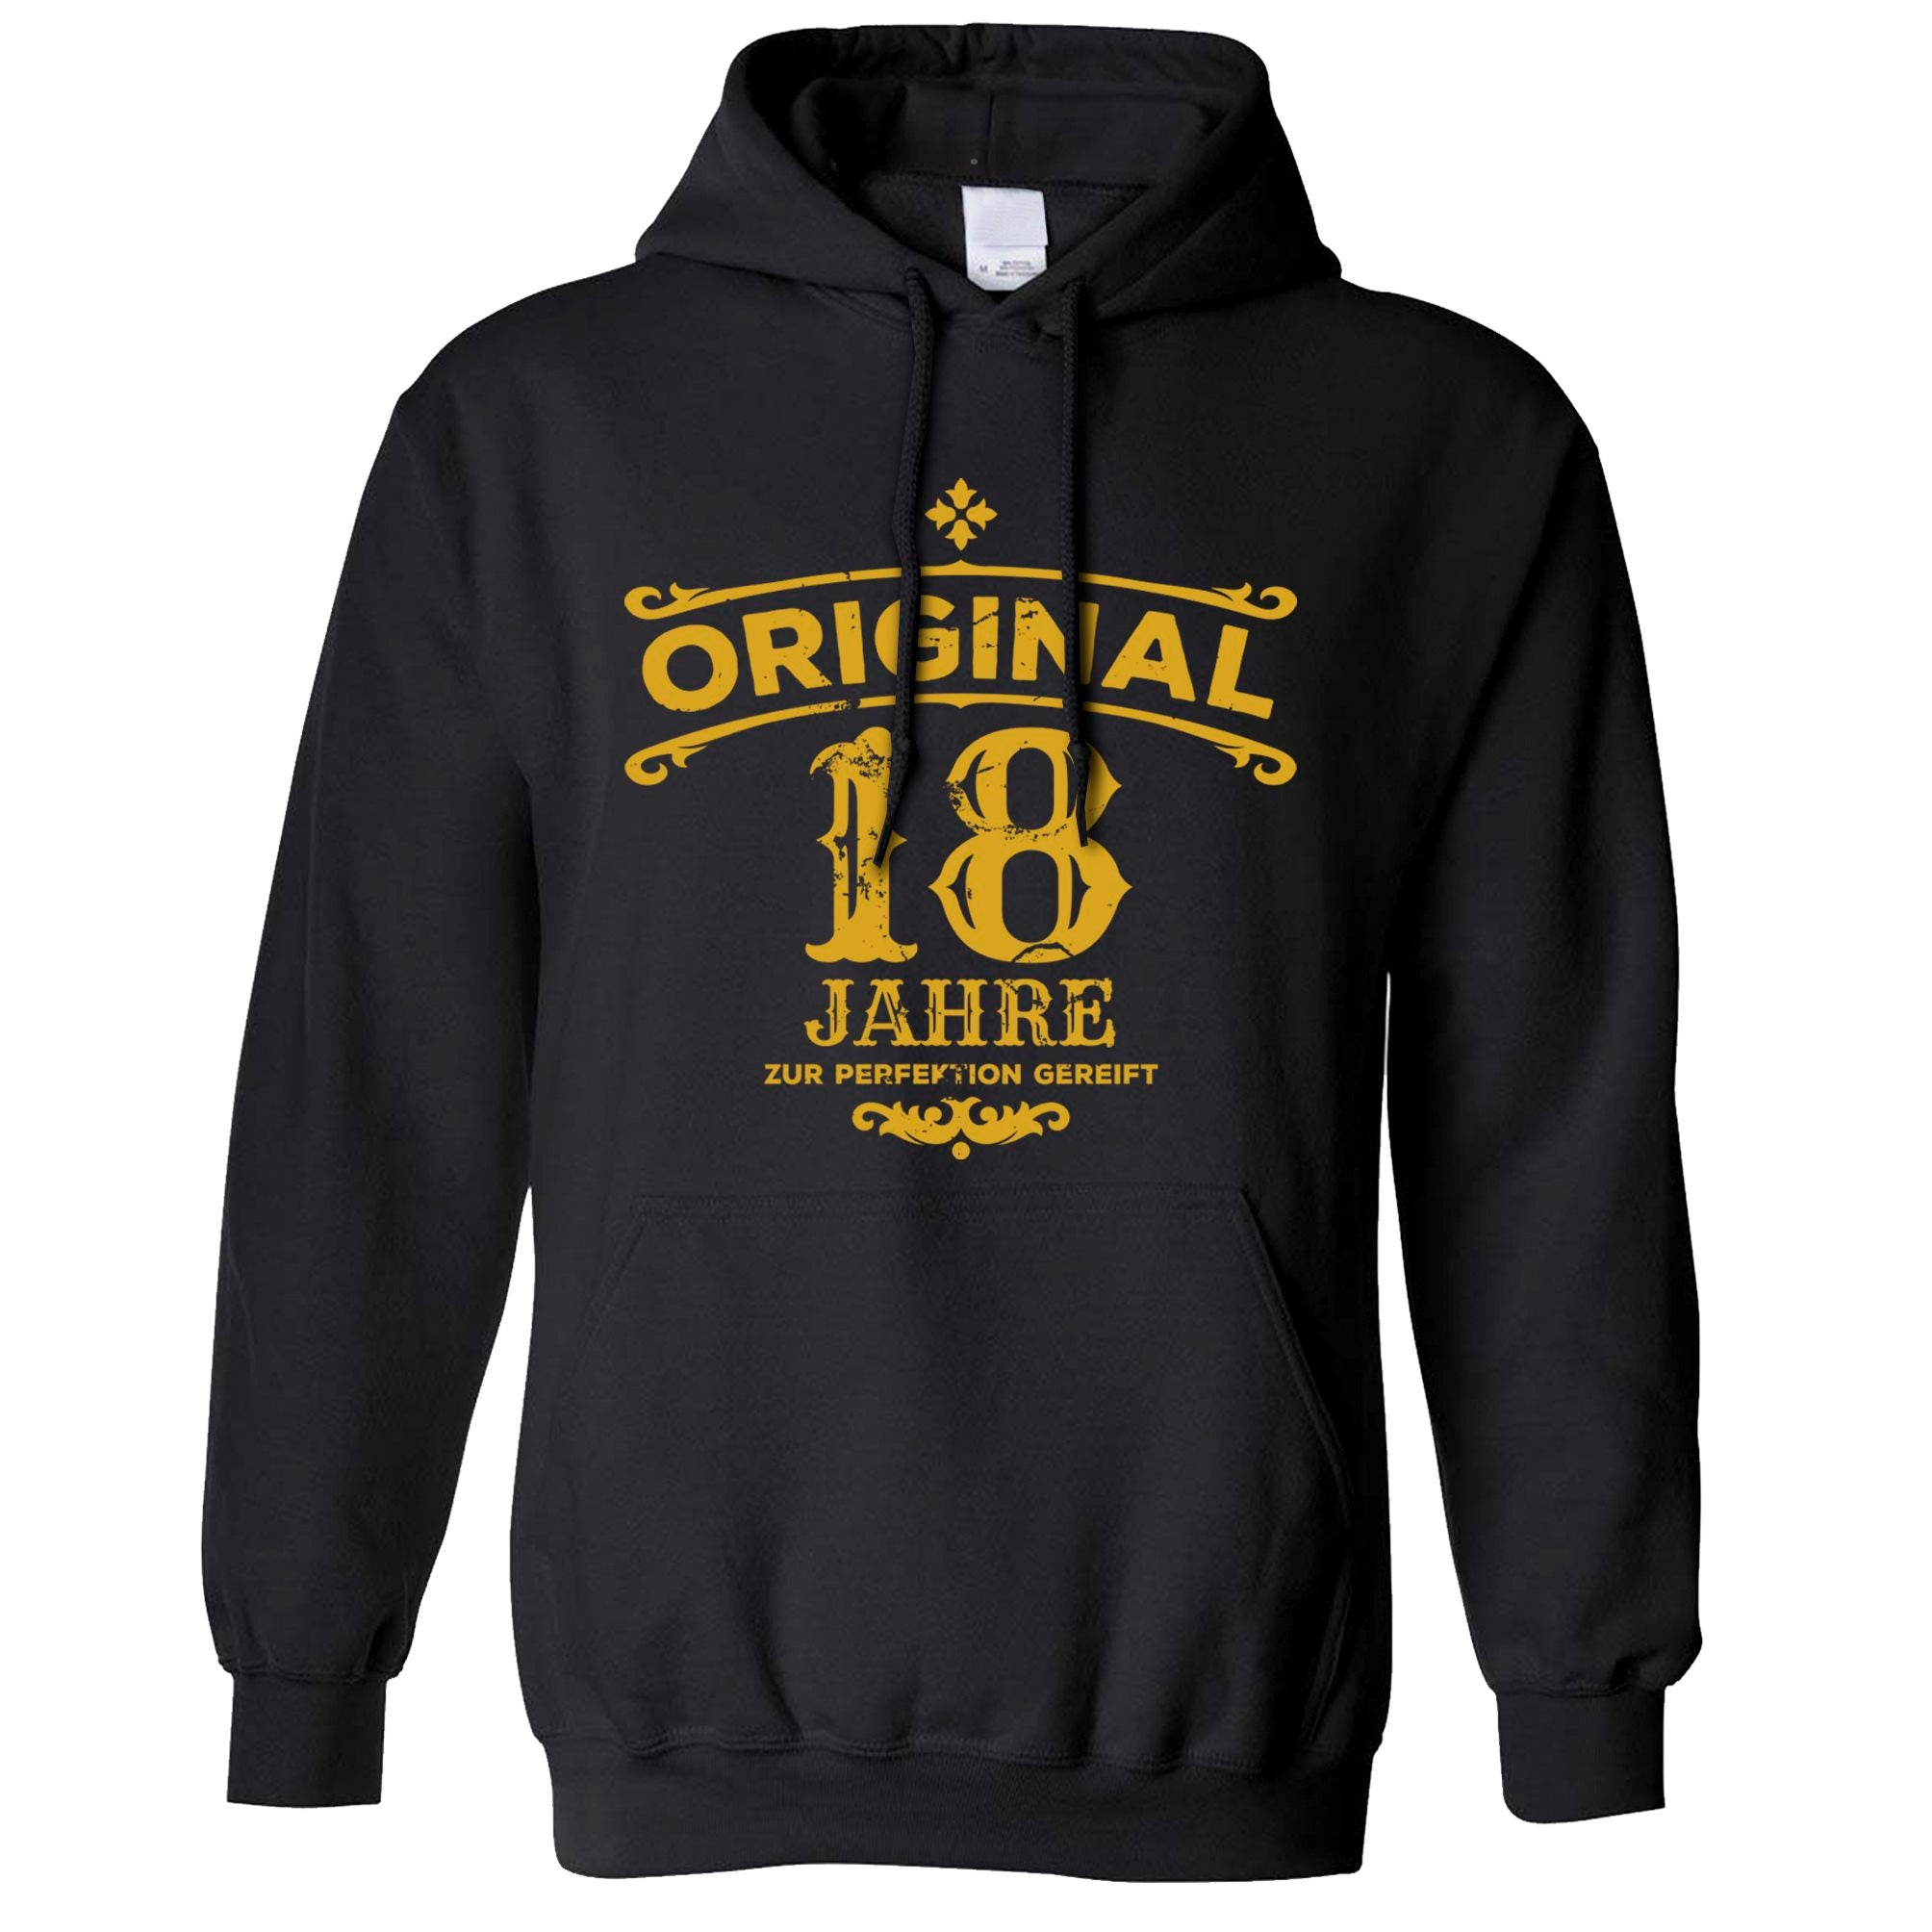 18th Birthday Hoodie Original Aged 18 Eighteen Years Hooded Jumper